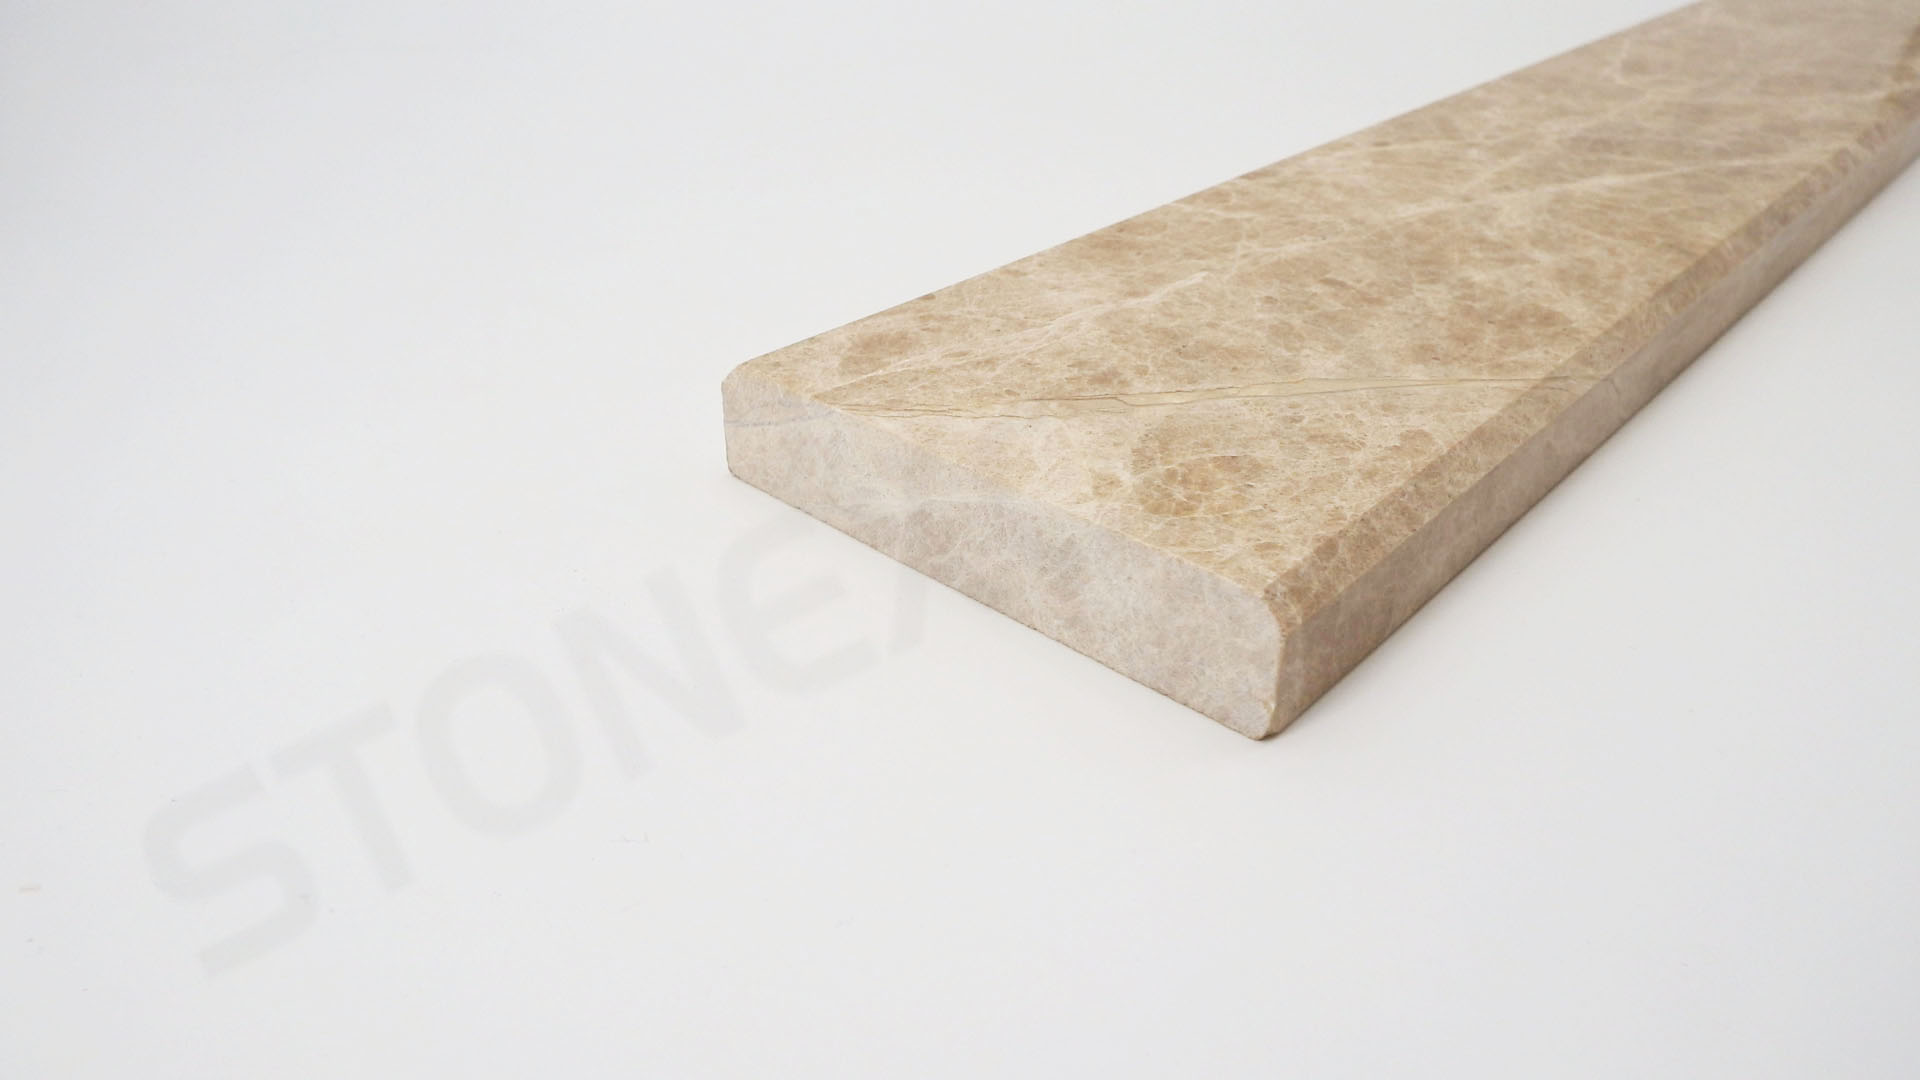 Light Emperador Brown Marble Double Standard Bevel Threshold 4x36 Close up